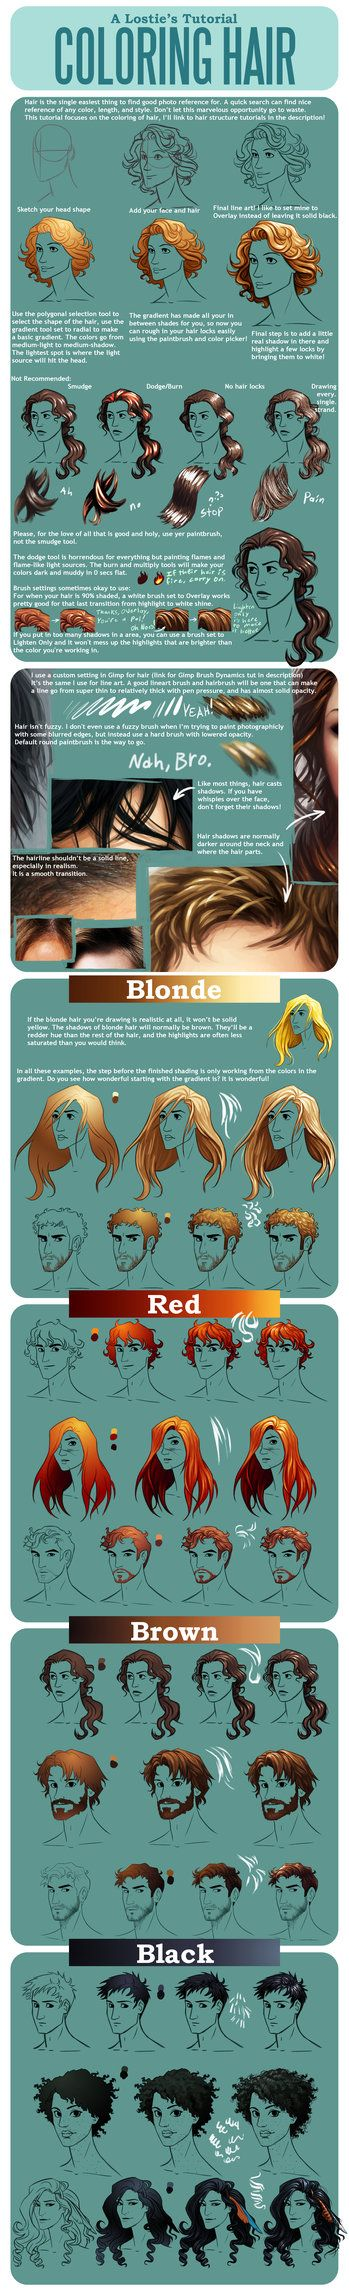 Hair Coloring Tutorial by lostie815 on deviantART WHERE HAS THIS BEEN ALL MY LIFE WTF?! MY DRAWINGS ARE GONNA KICK ASS NOW. YES!